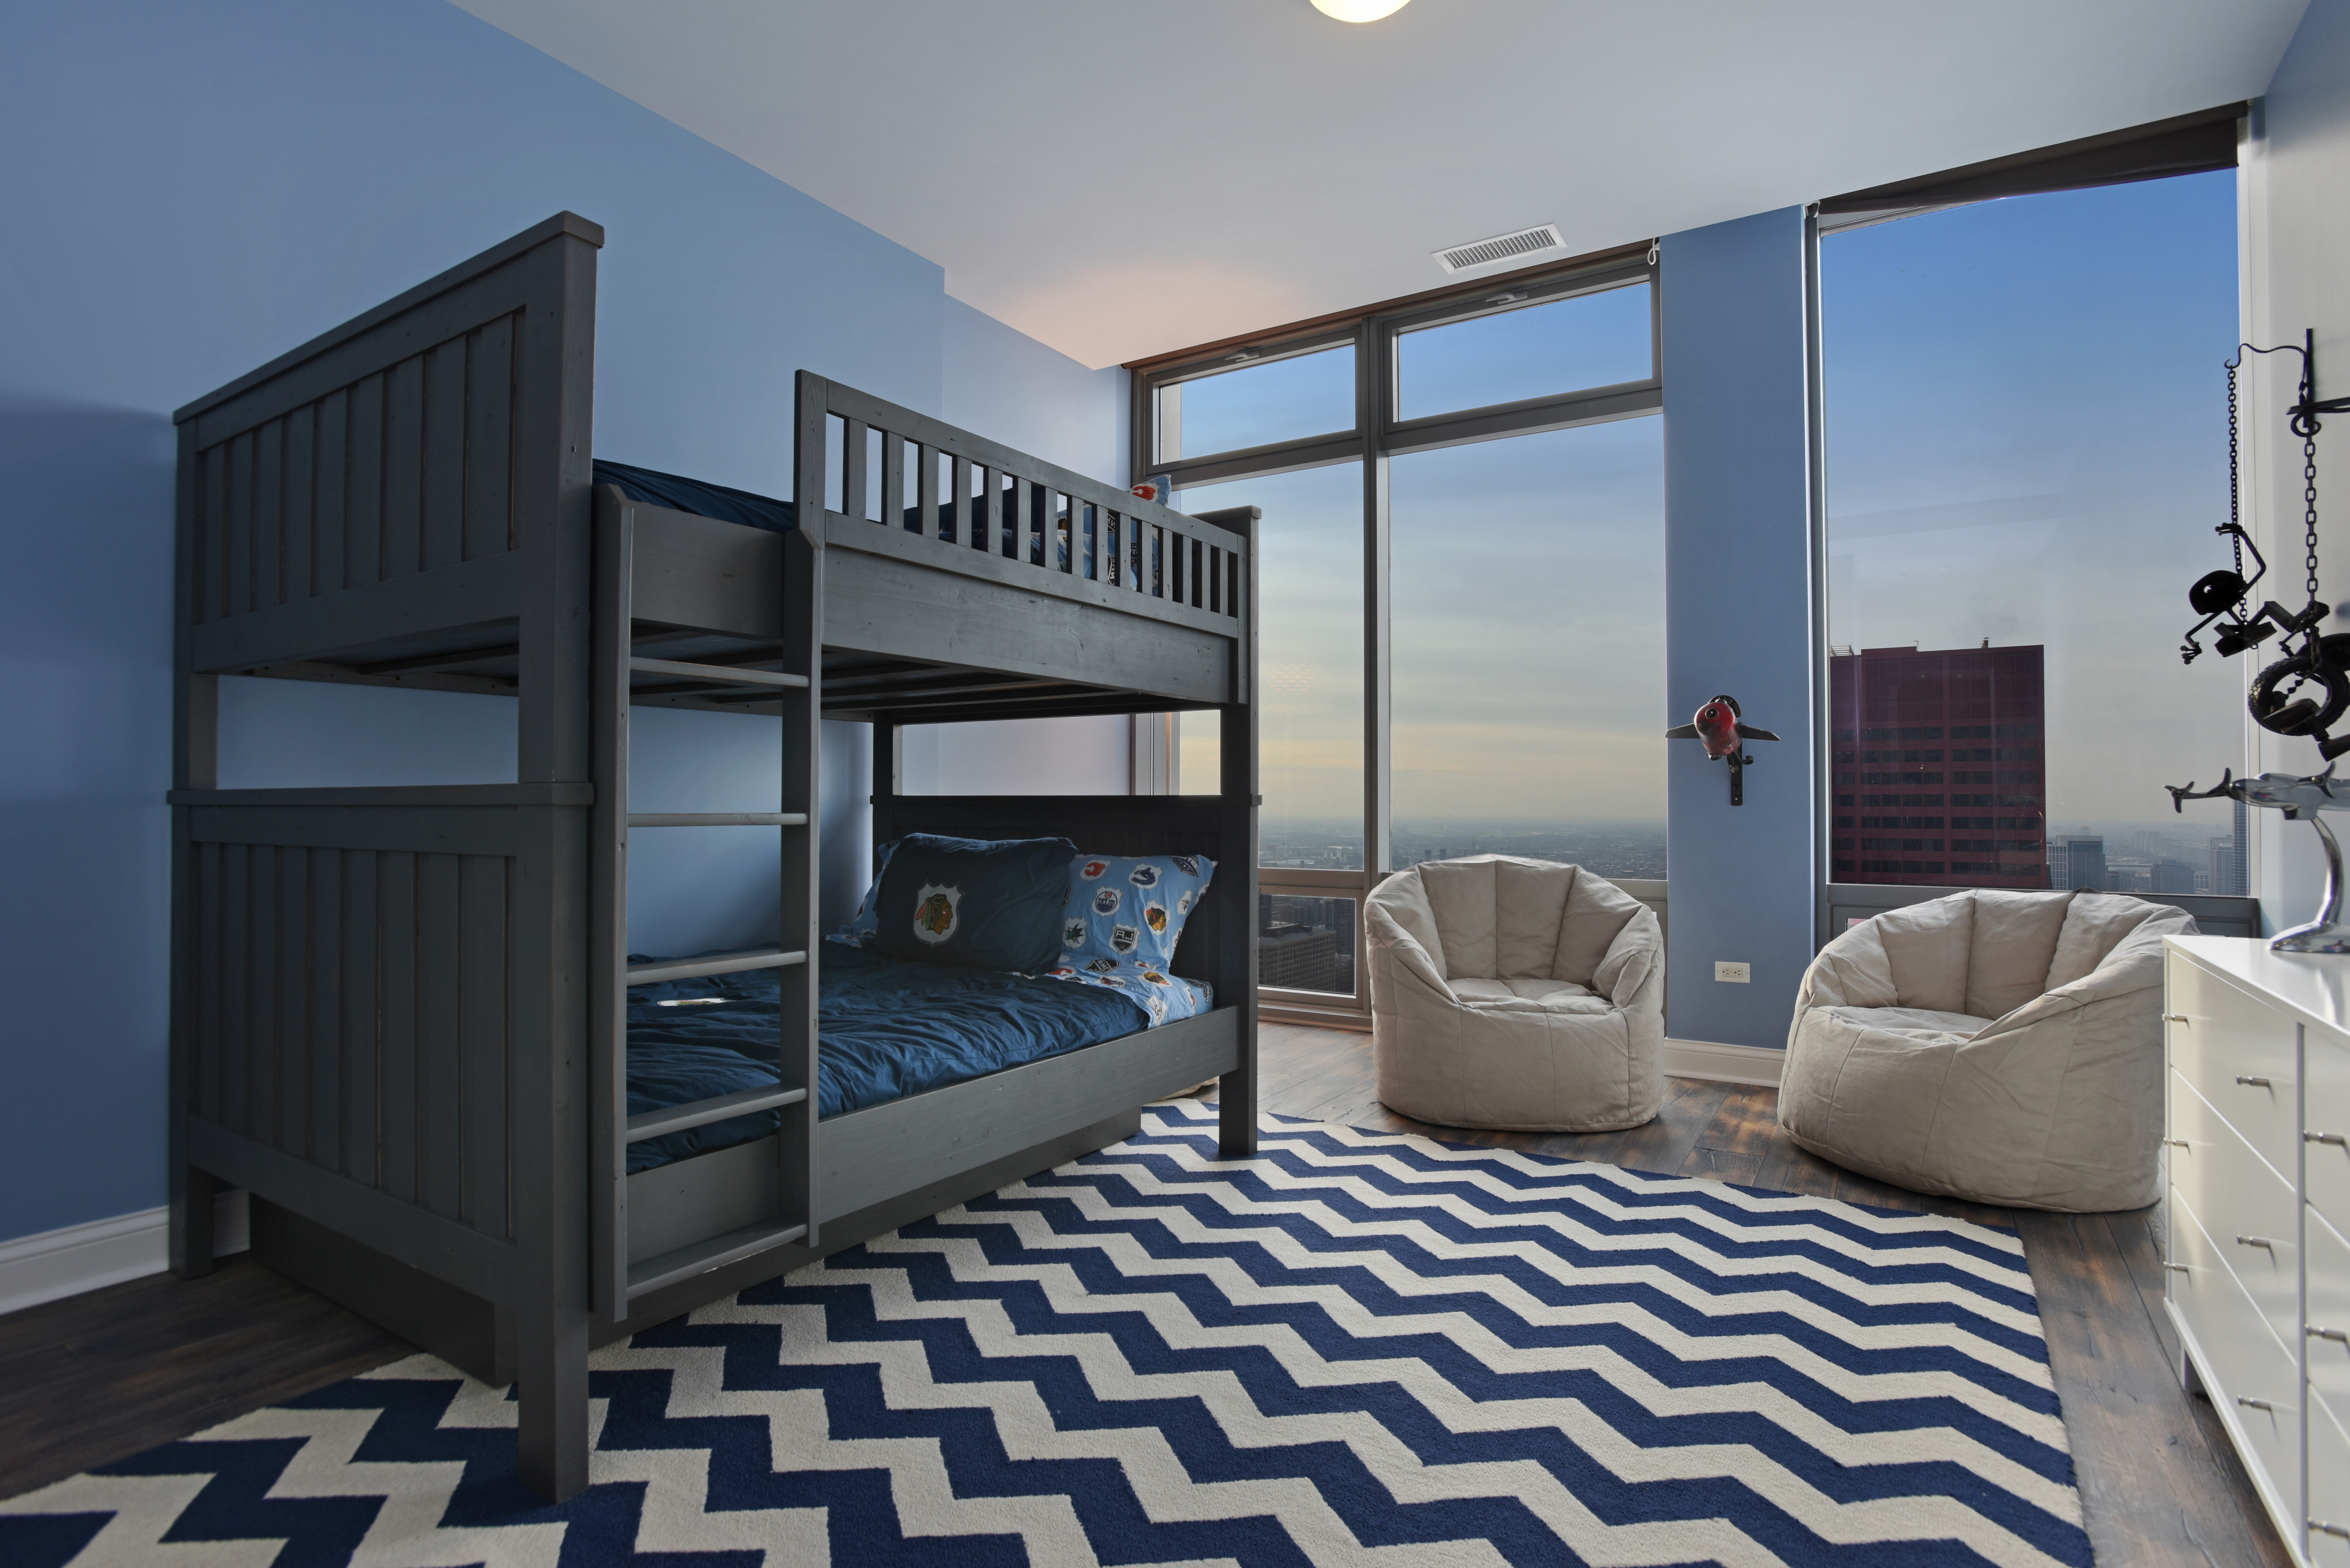 2017 Contemporary Kids Apartment Bedroom Decor With Bunk Bed (Image 2 of 35)